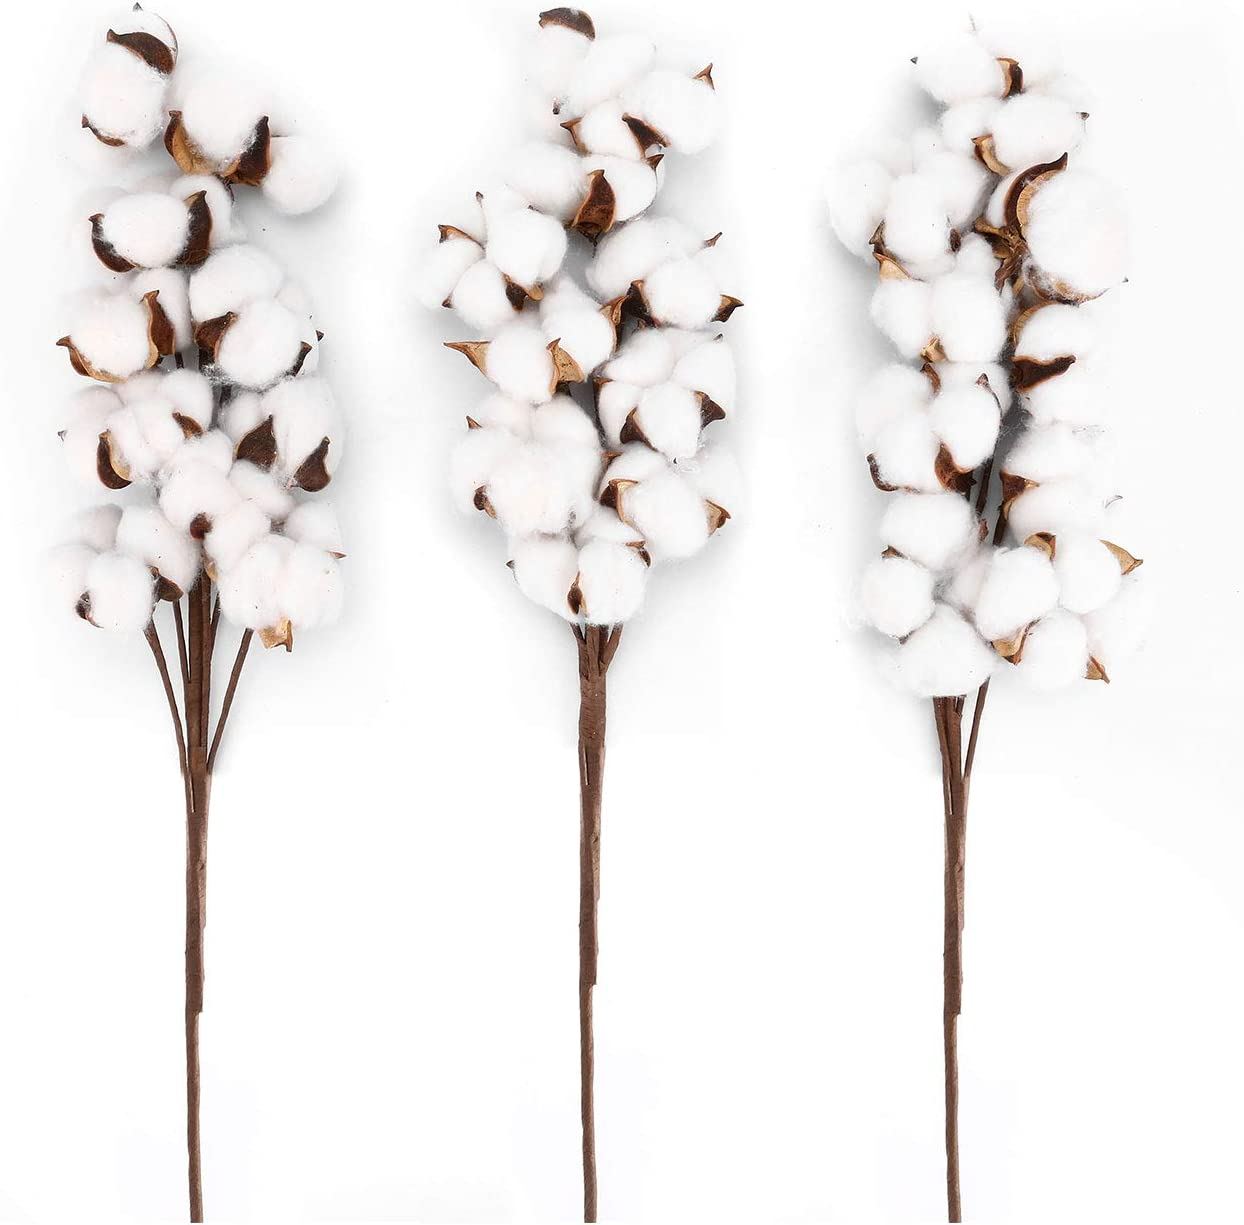 Pack of 3 Cotton Stems Cotton Flowers, Dried Flowers, 10 Balls Each, Farmhouse Style Display Vase Filler, Rustic Decorations Home, Office, 21 inches, Wedding Centerpiece, by Crystal Lemon